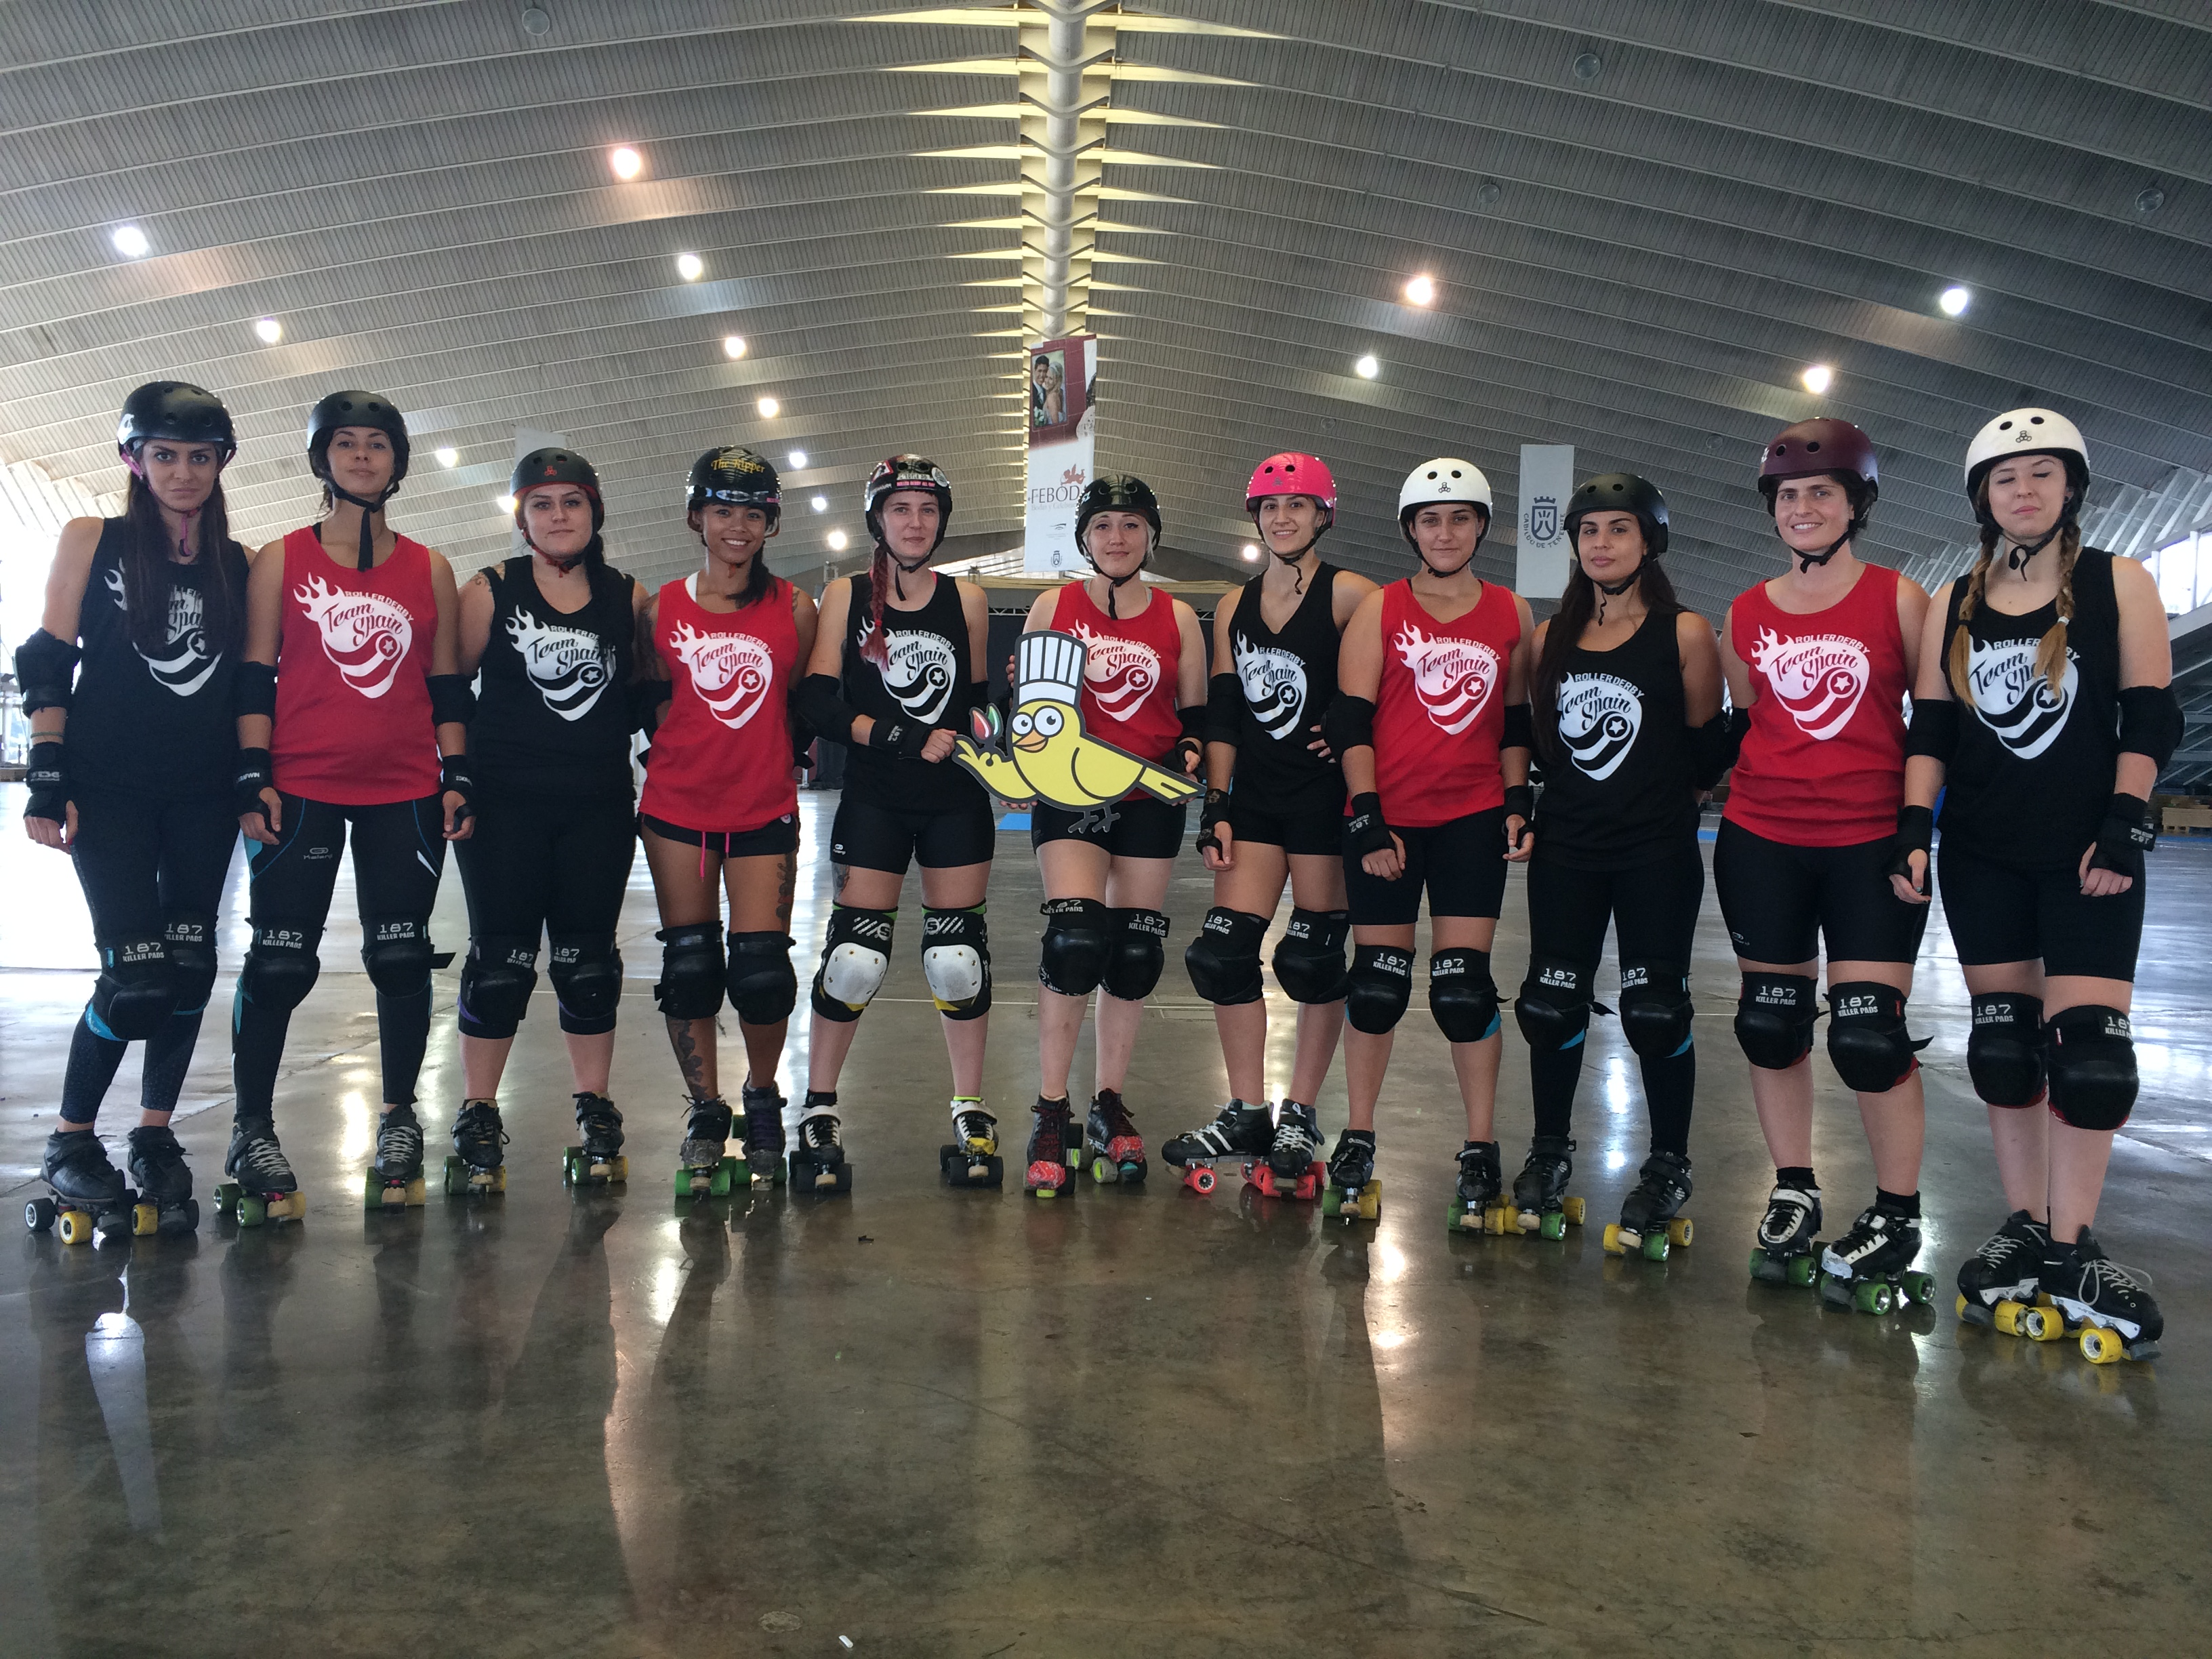 TEAM SPAIN ROLLER DERBY 1 EN RECINTO FERIAL